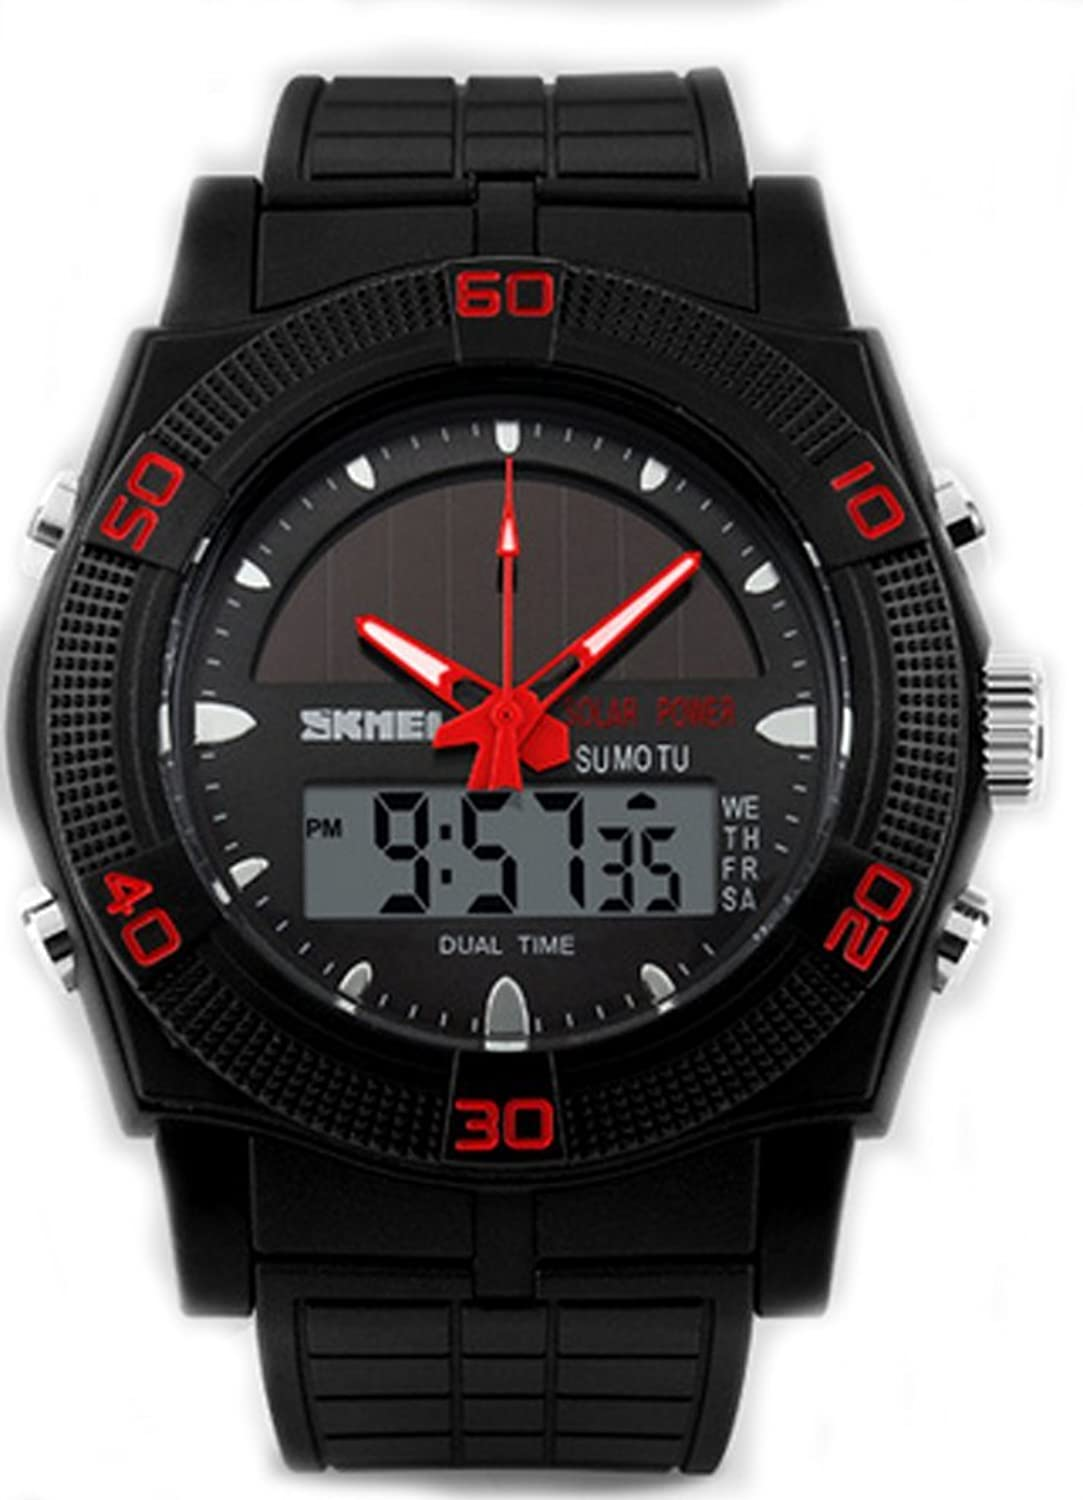 Solar Powered防水Wrist Watches withシリコンバンド B01DI4IOSE